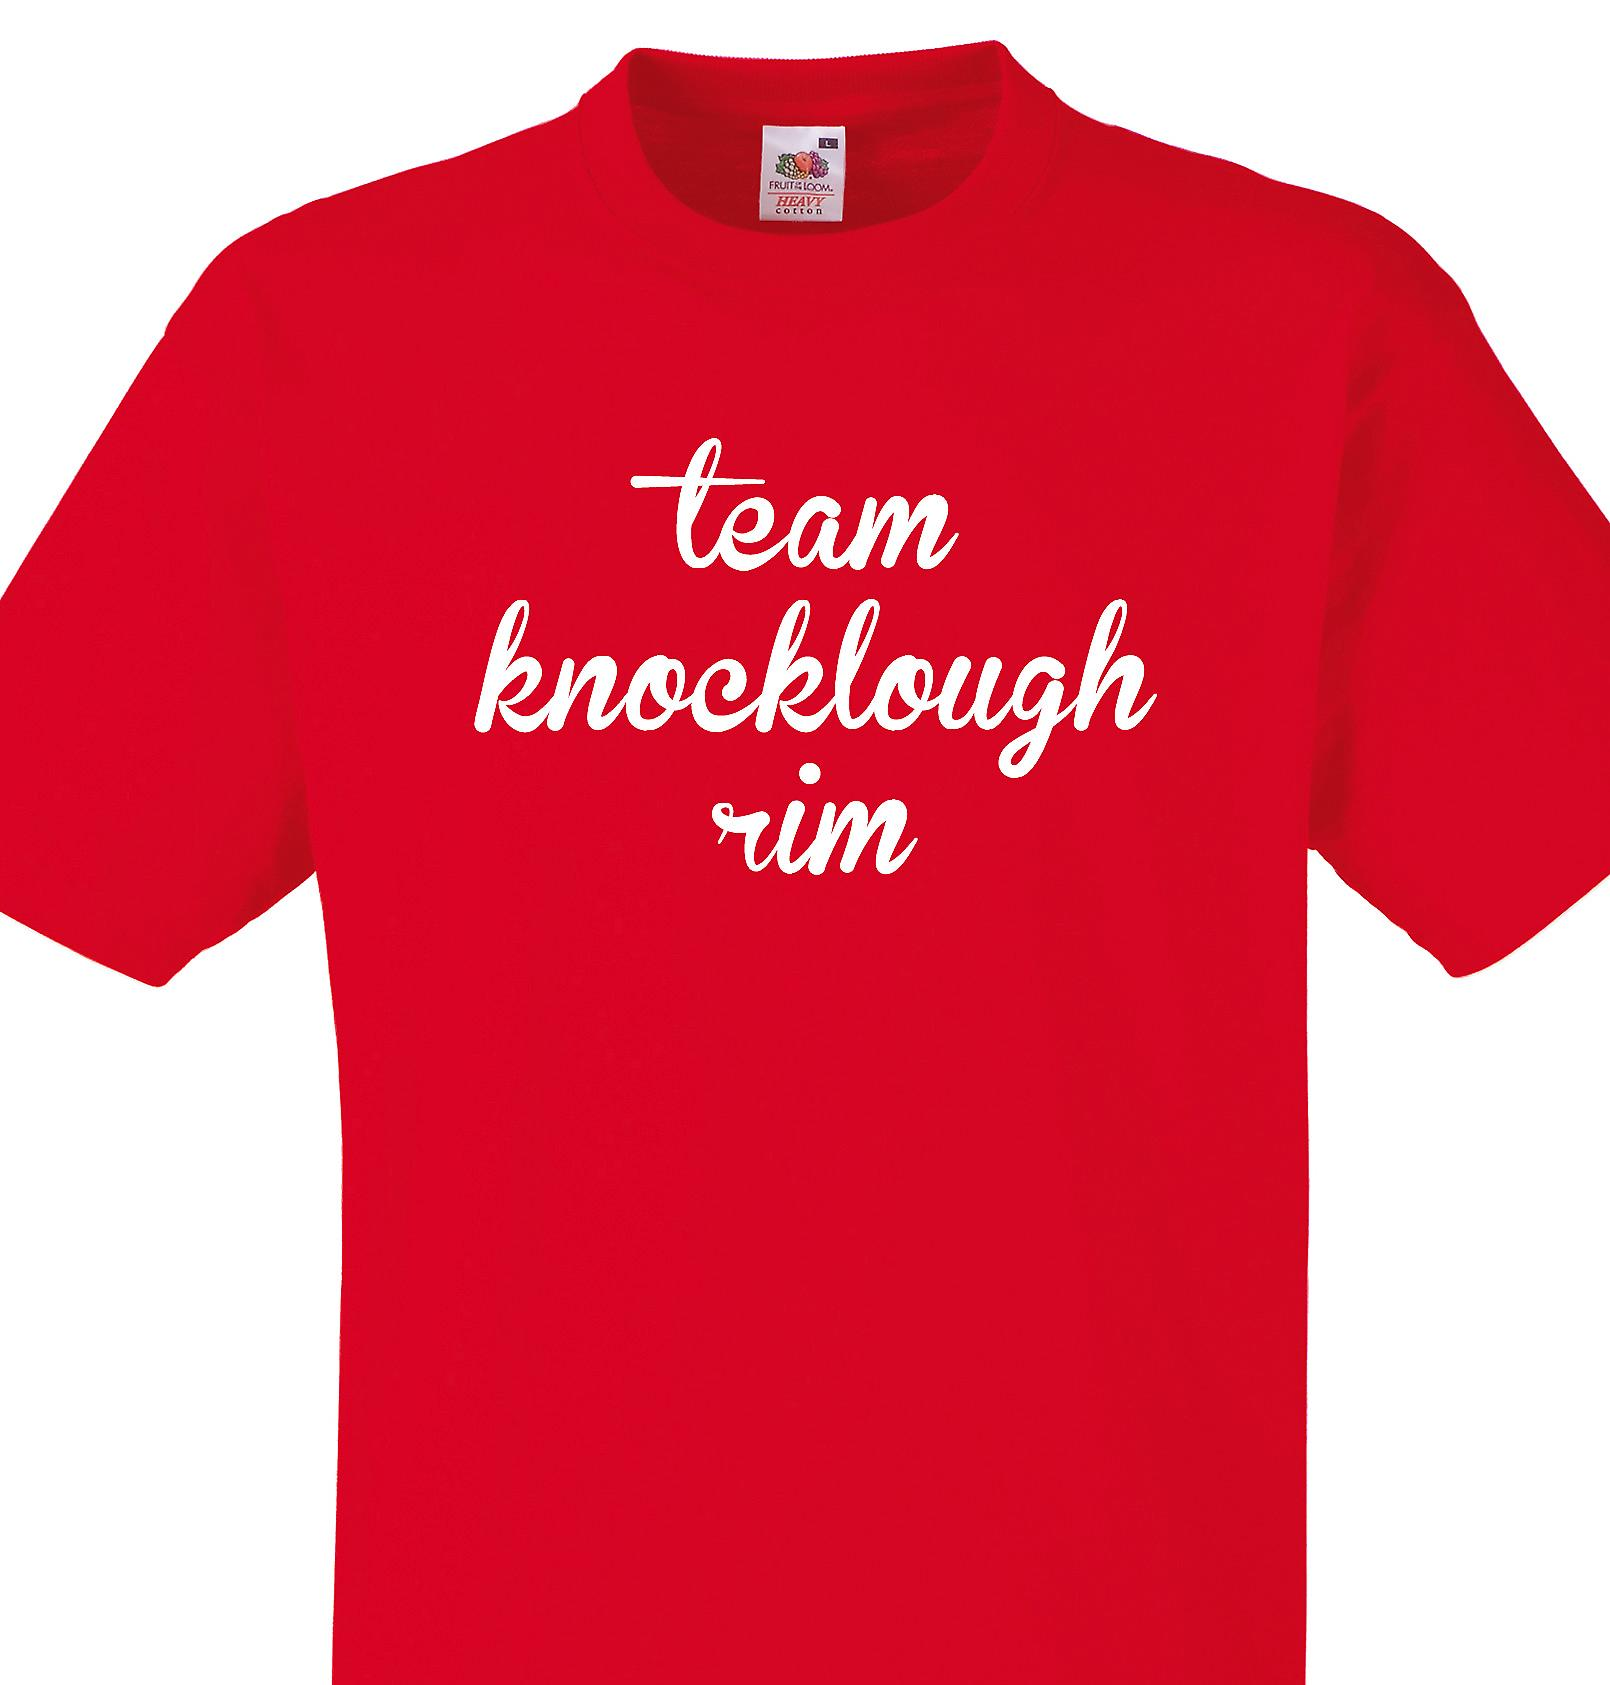 Team Knockloughrim Red T shirt